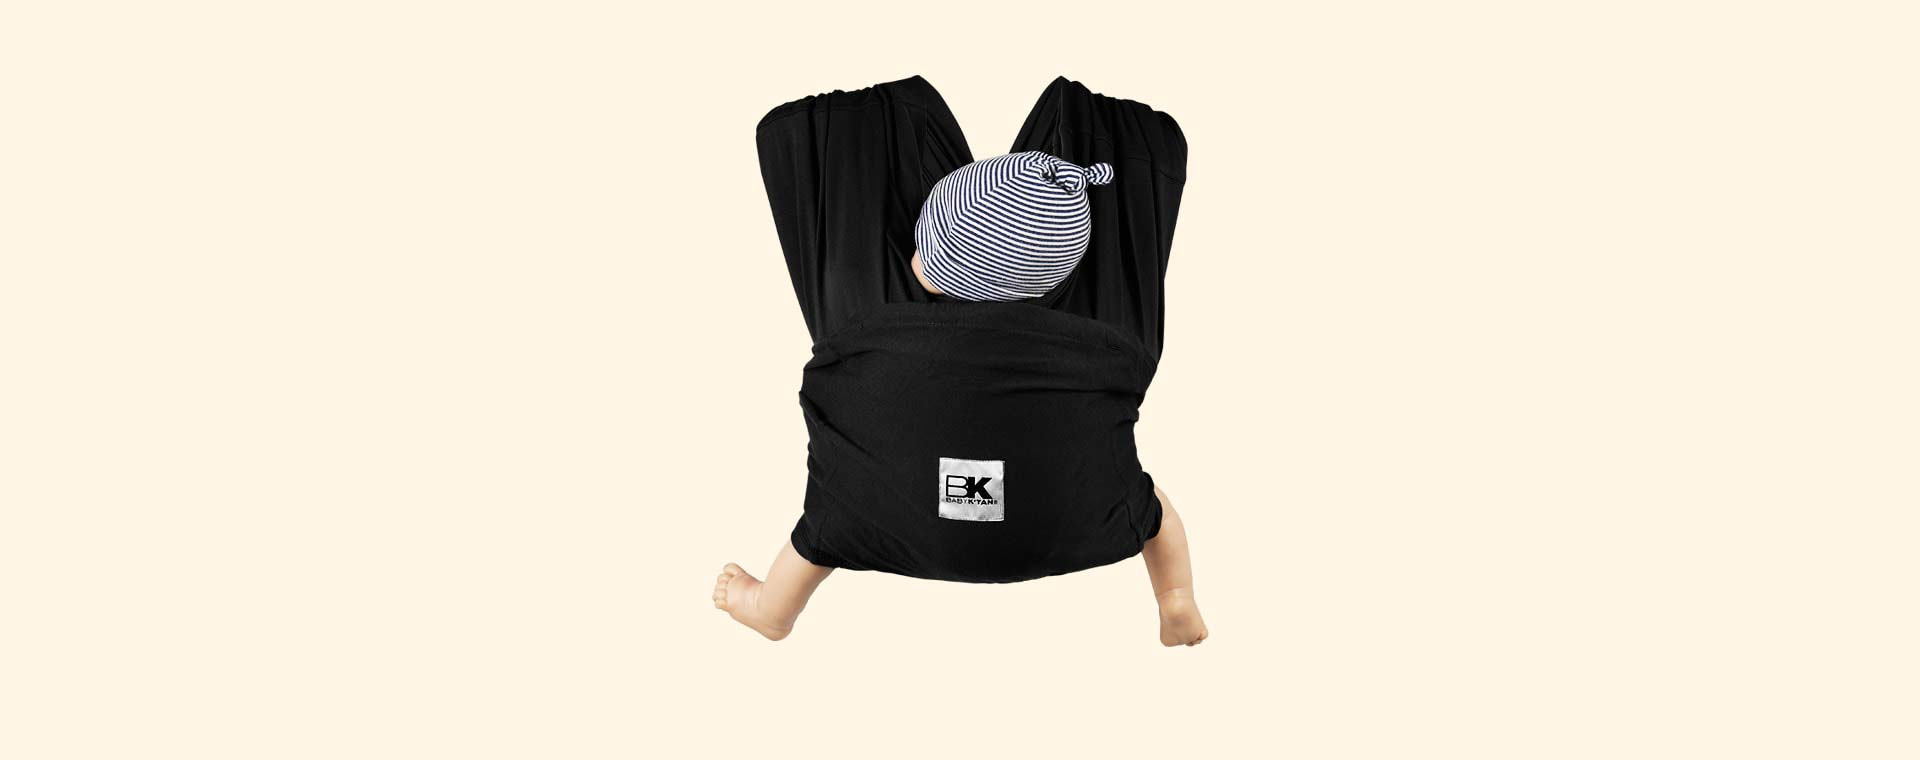 Black Baby K'tan Original Wrap Baby Carrier